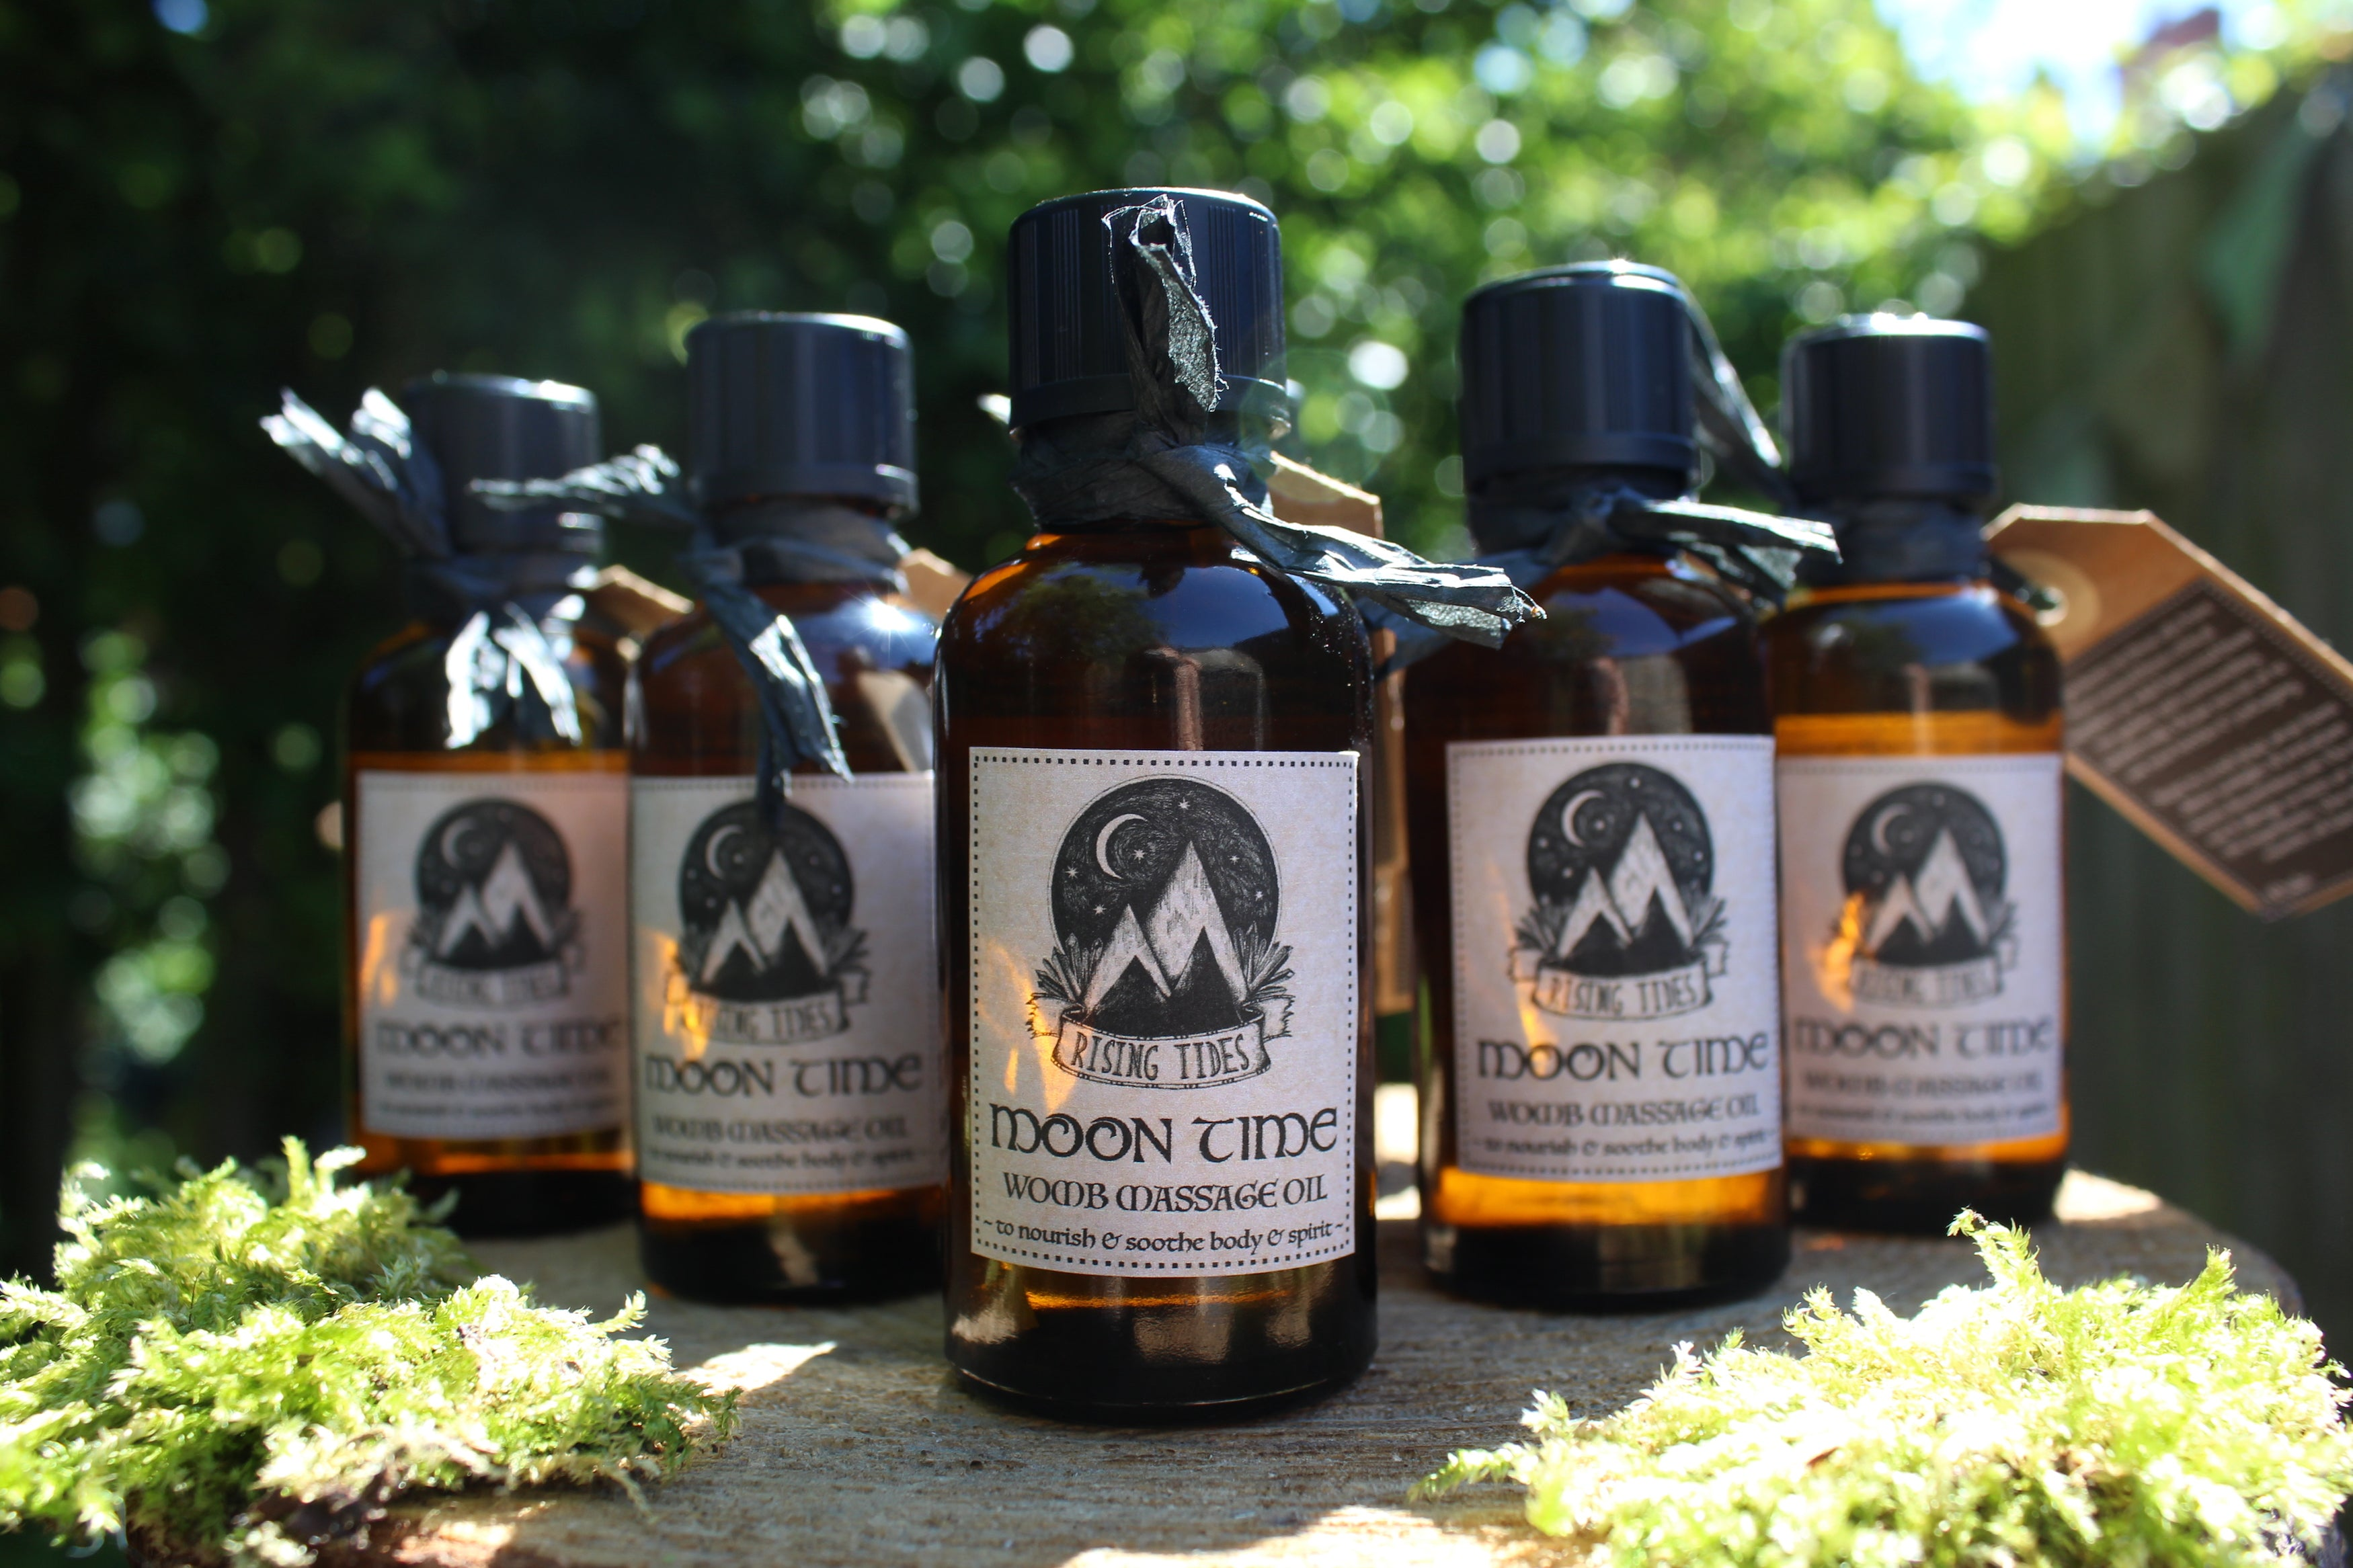 Moon Time Womb Massage Oil (last one left)